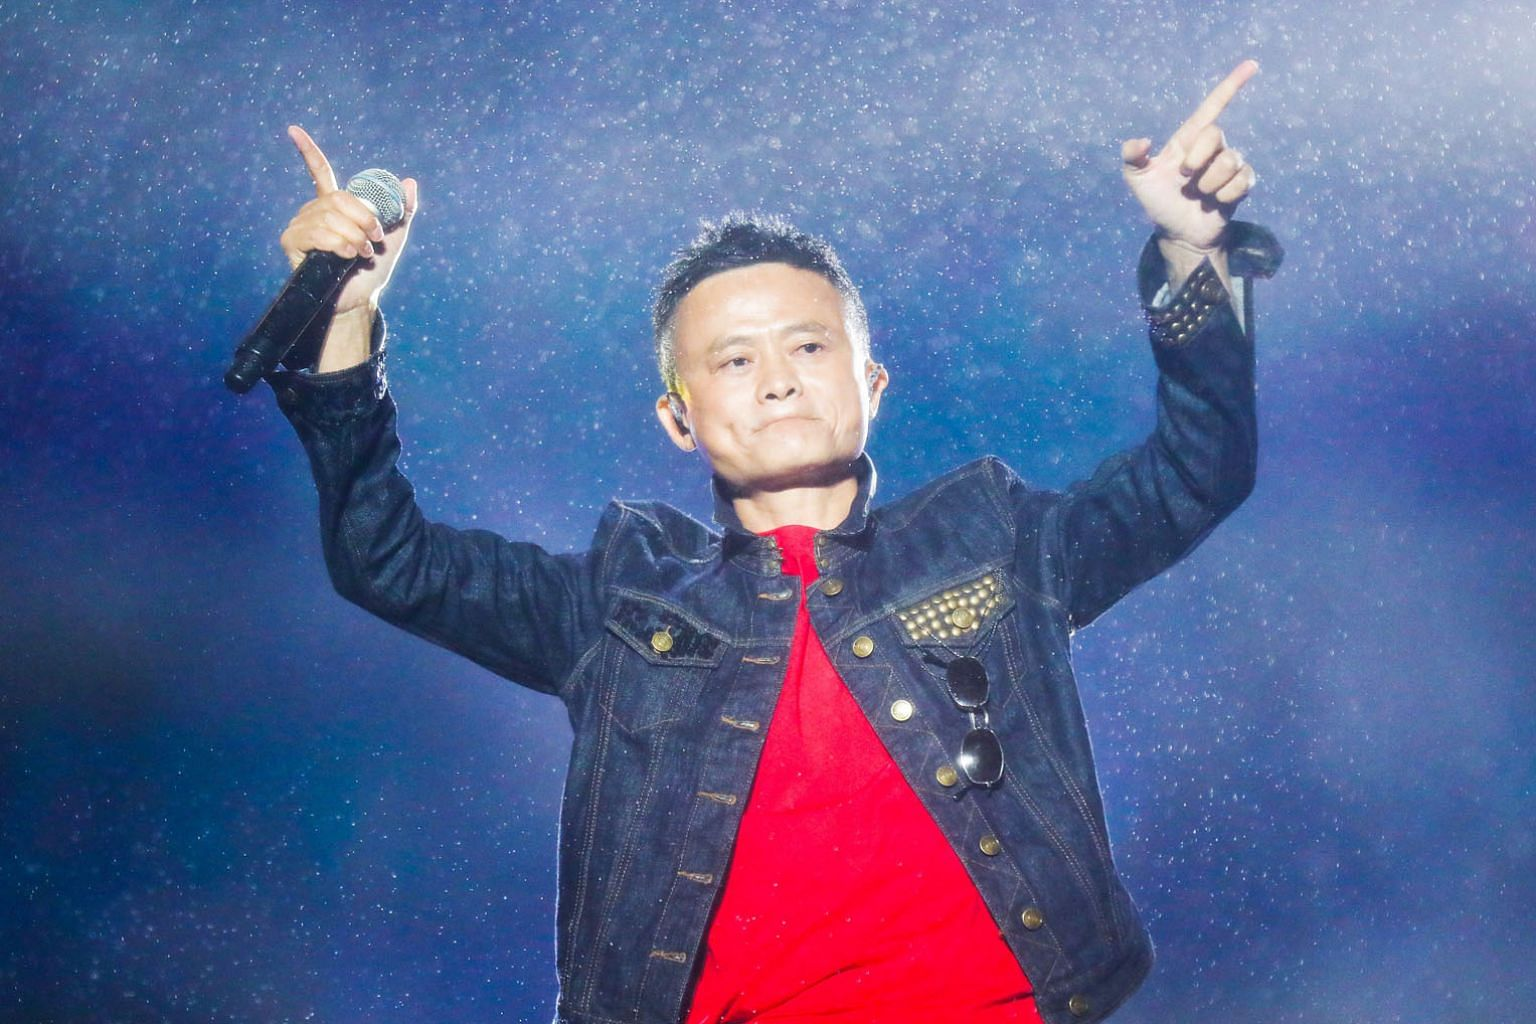 Mr Jack Ma, Alibaba group founder and executive chairman, announced a few months ago that he would gradually withdraw from the day-to-day management of the company. Once the embodiment of disruption, companies like Alibaba now face being disrupted by